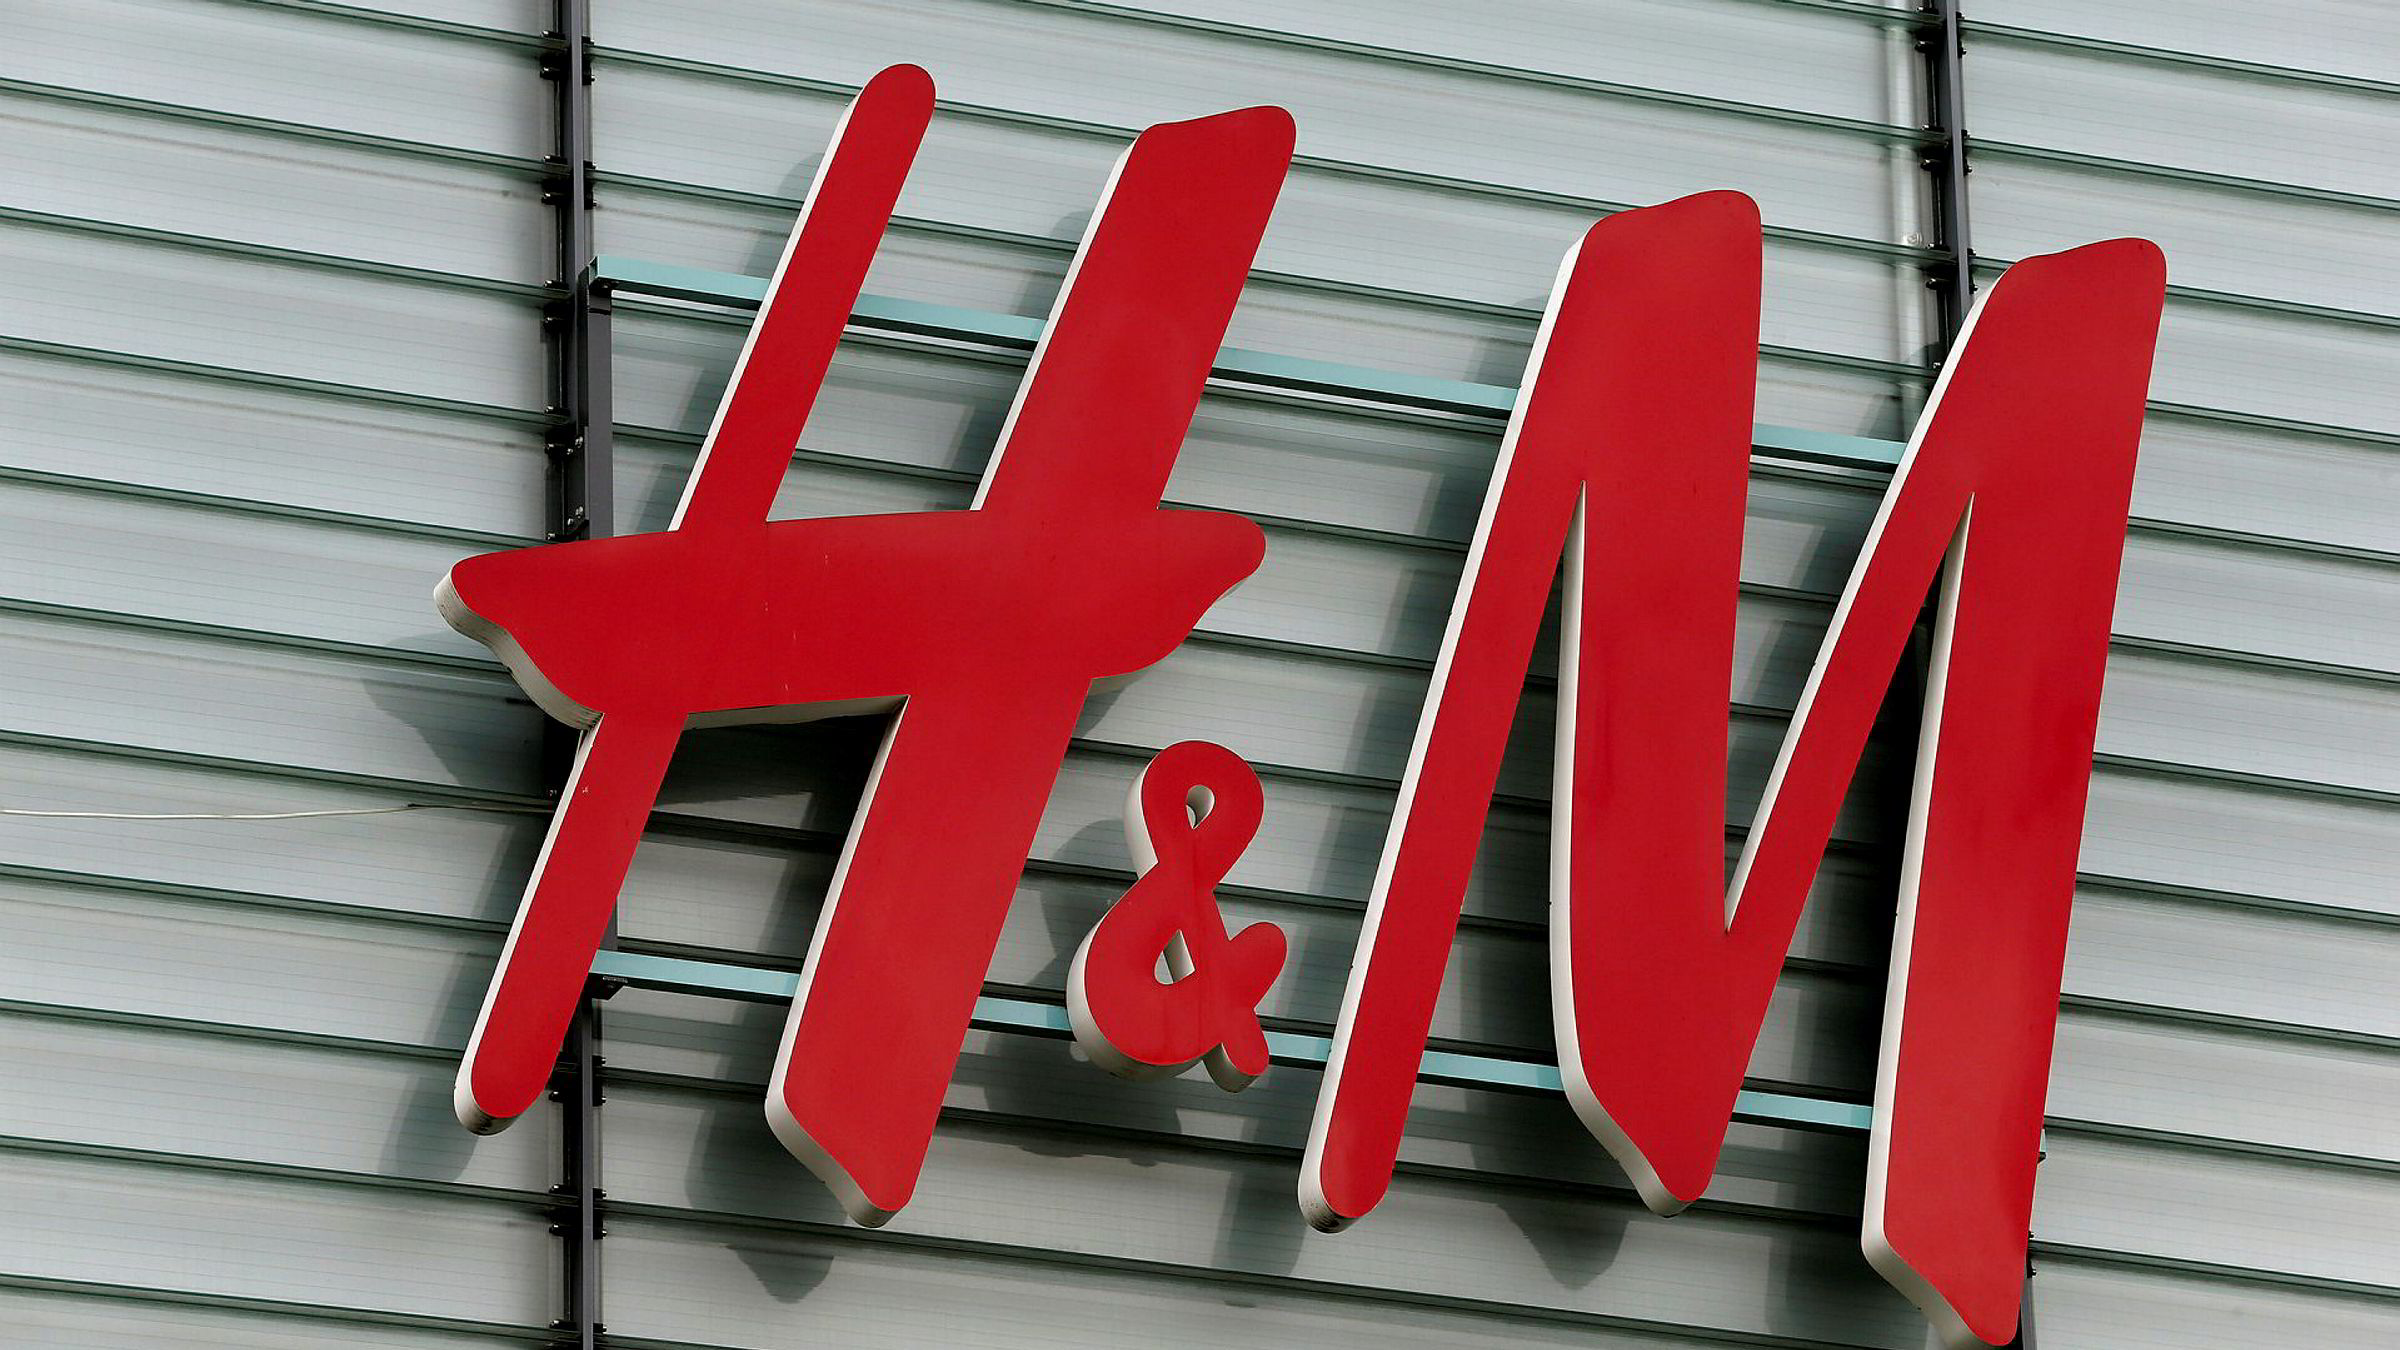 FILE PHOTO: The logo of Swedish fashion retail group H